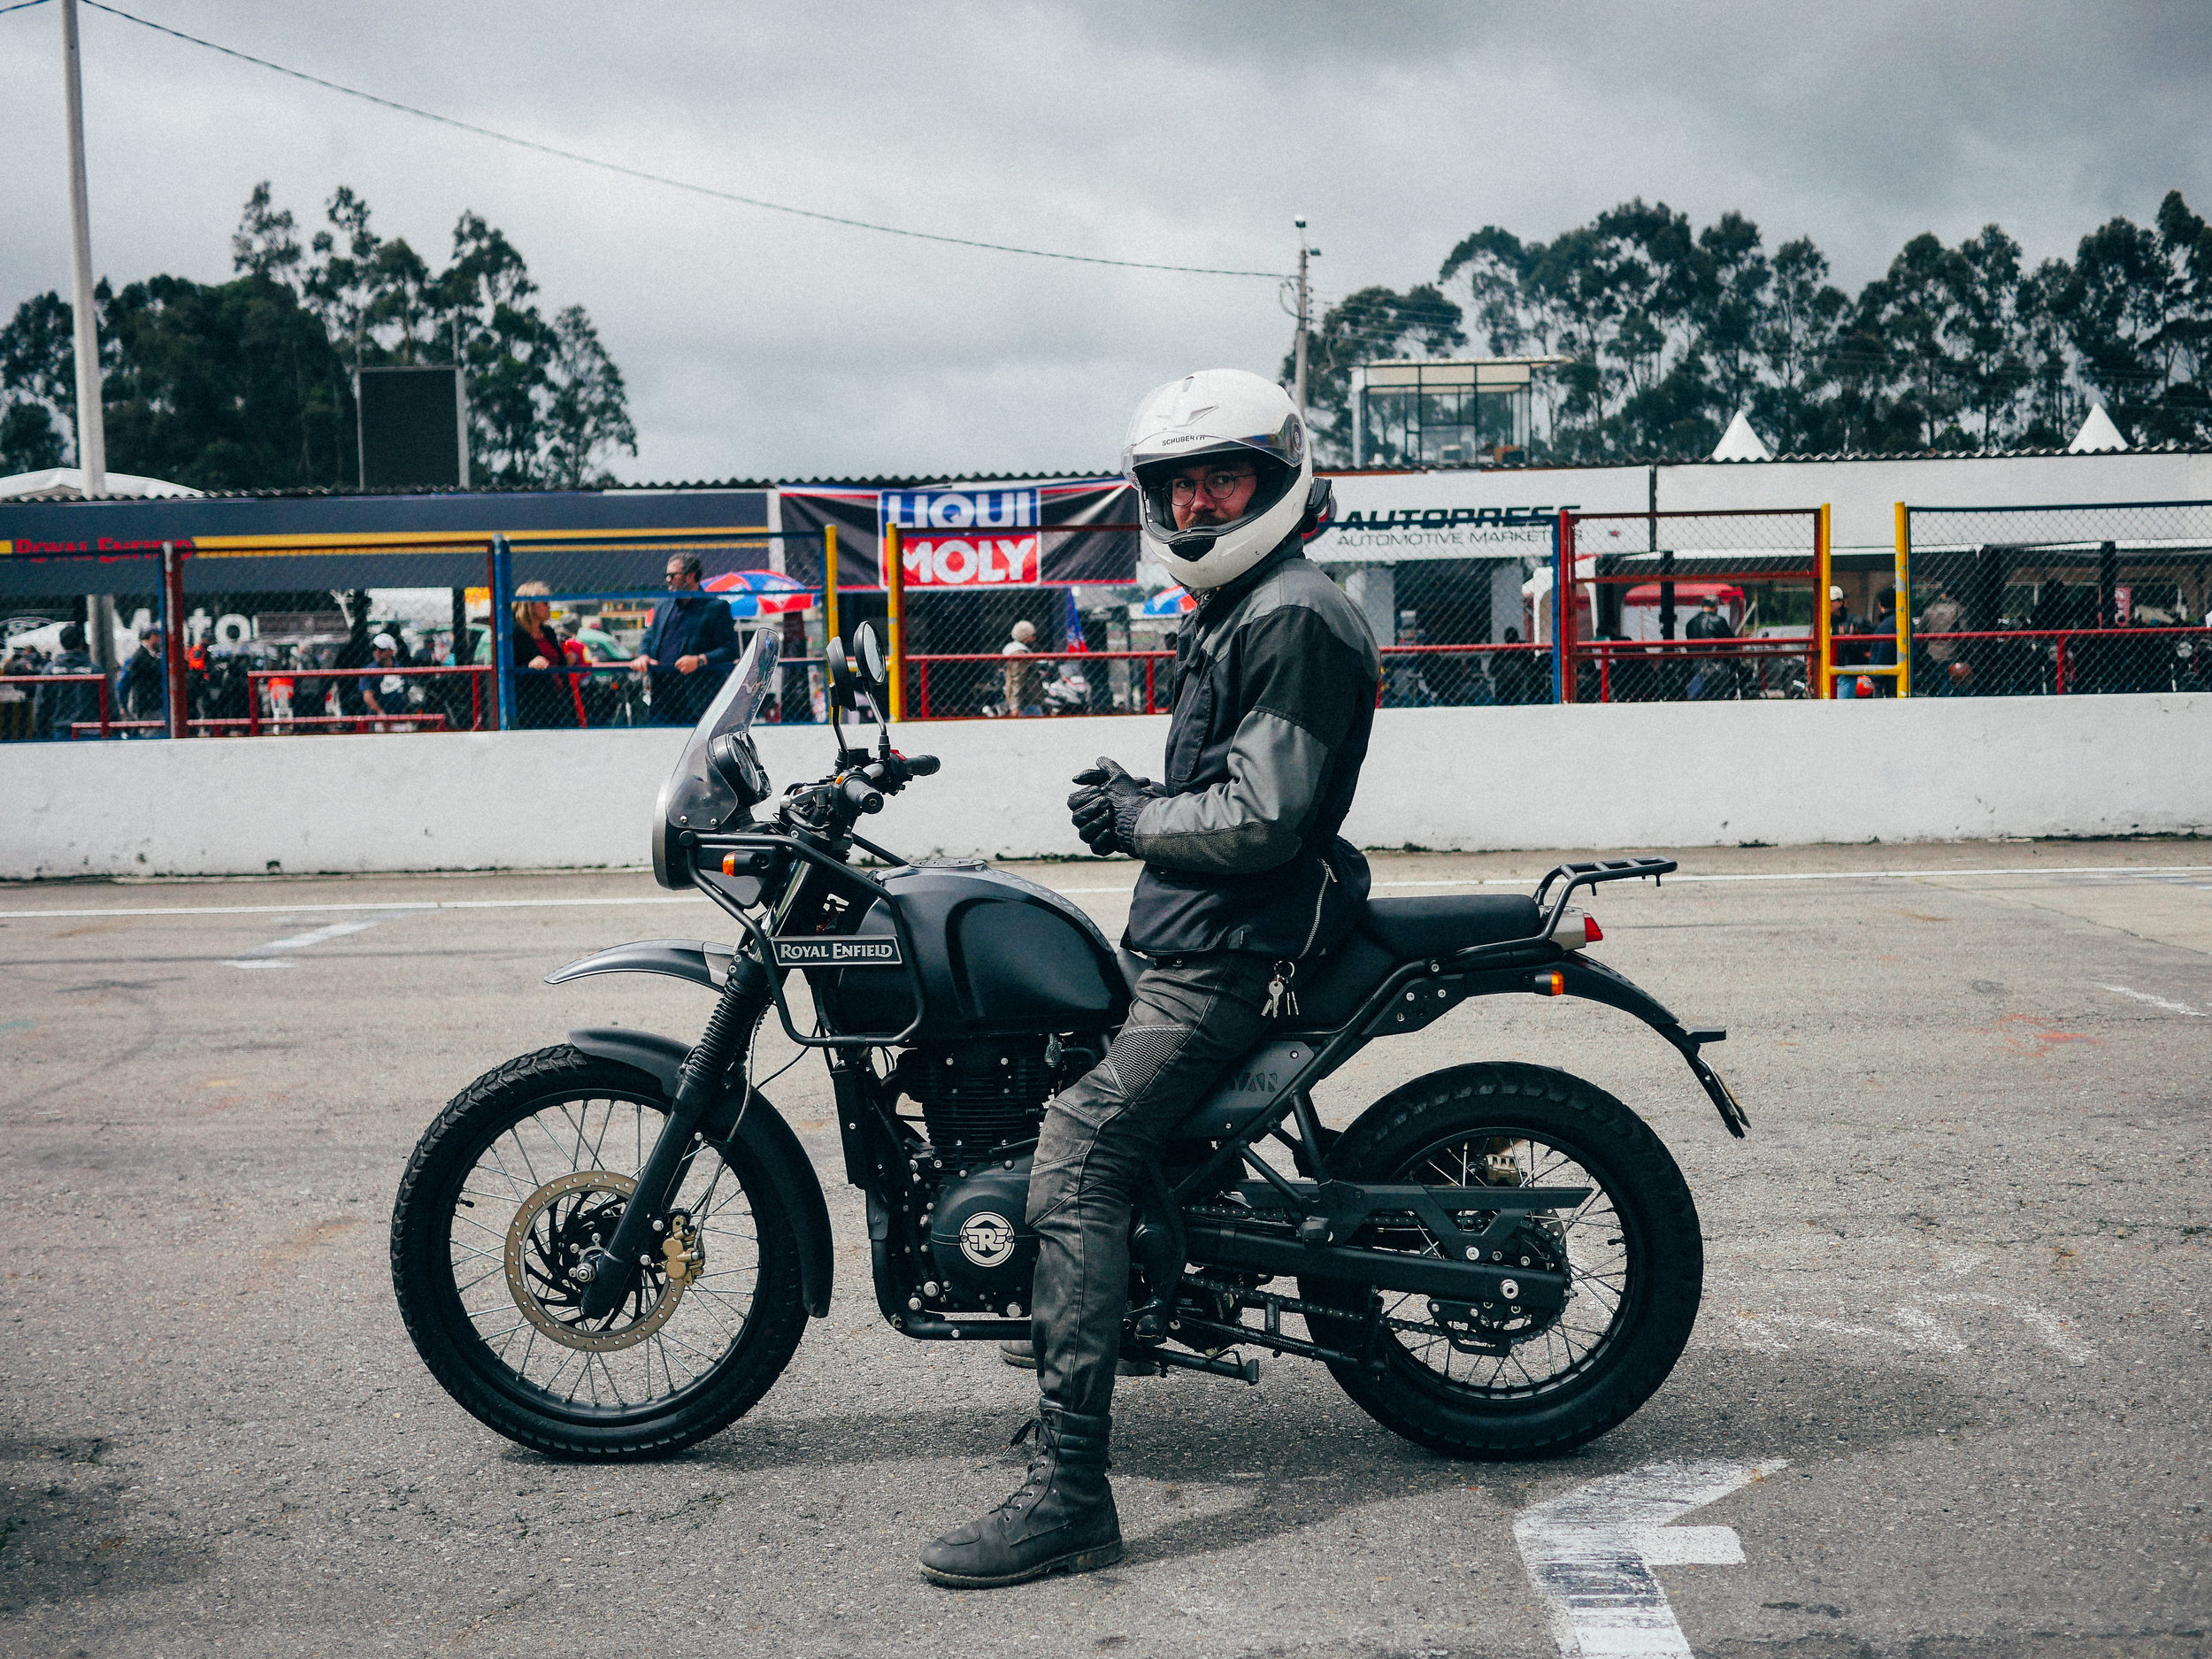 Nathan and the Royal Enfield Himalayan dress to kill